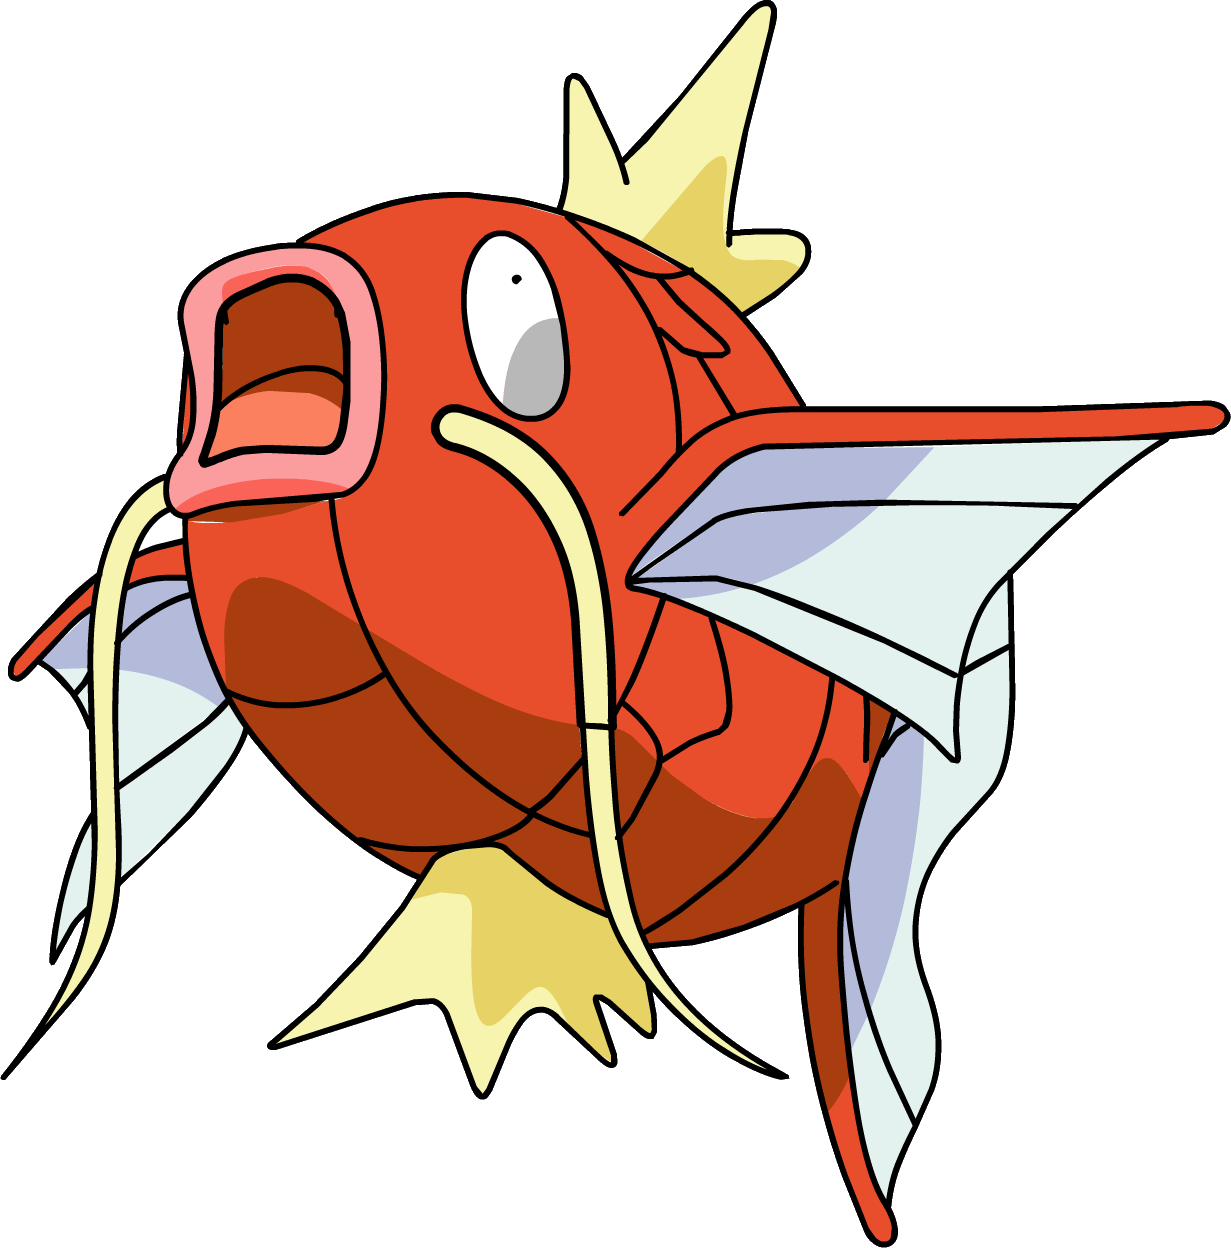 magikarp | pokémon wiki | fandom powered by wikia